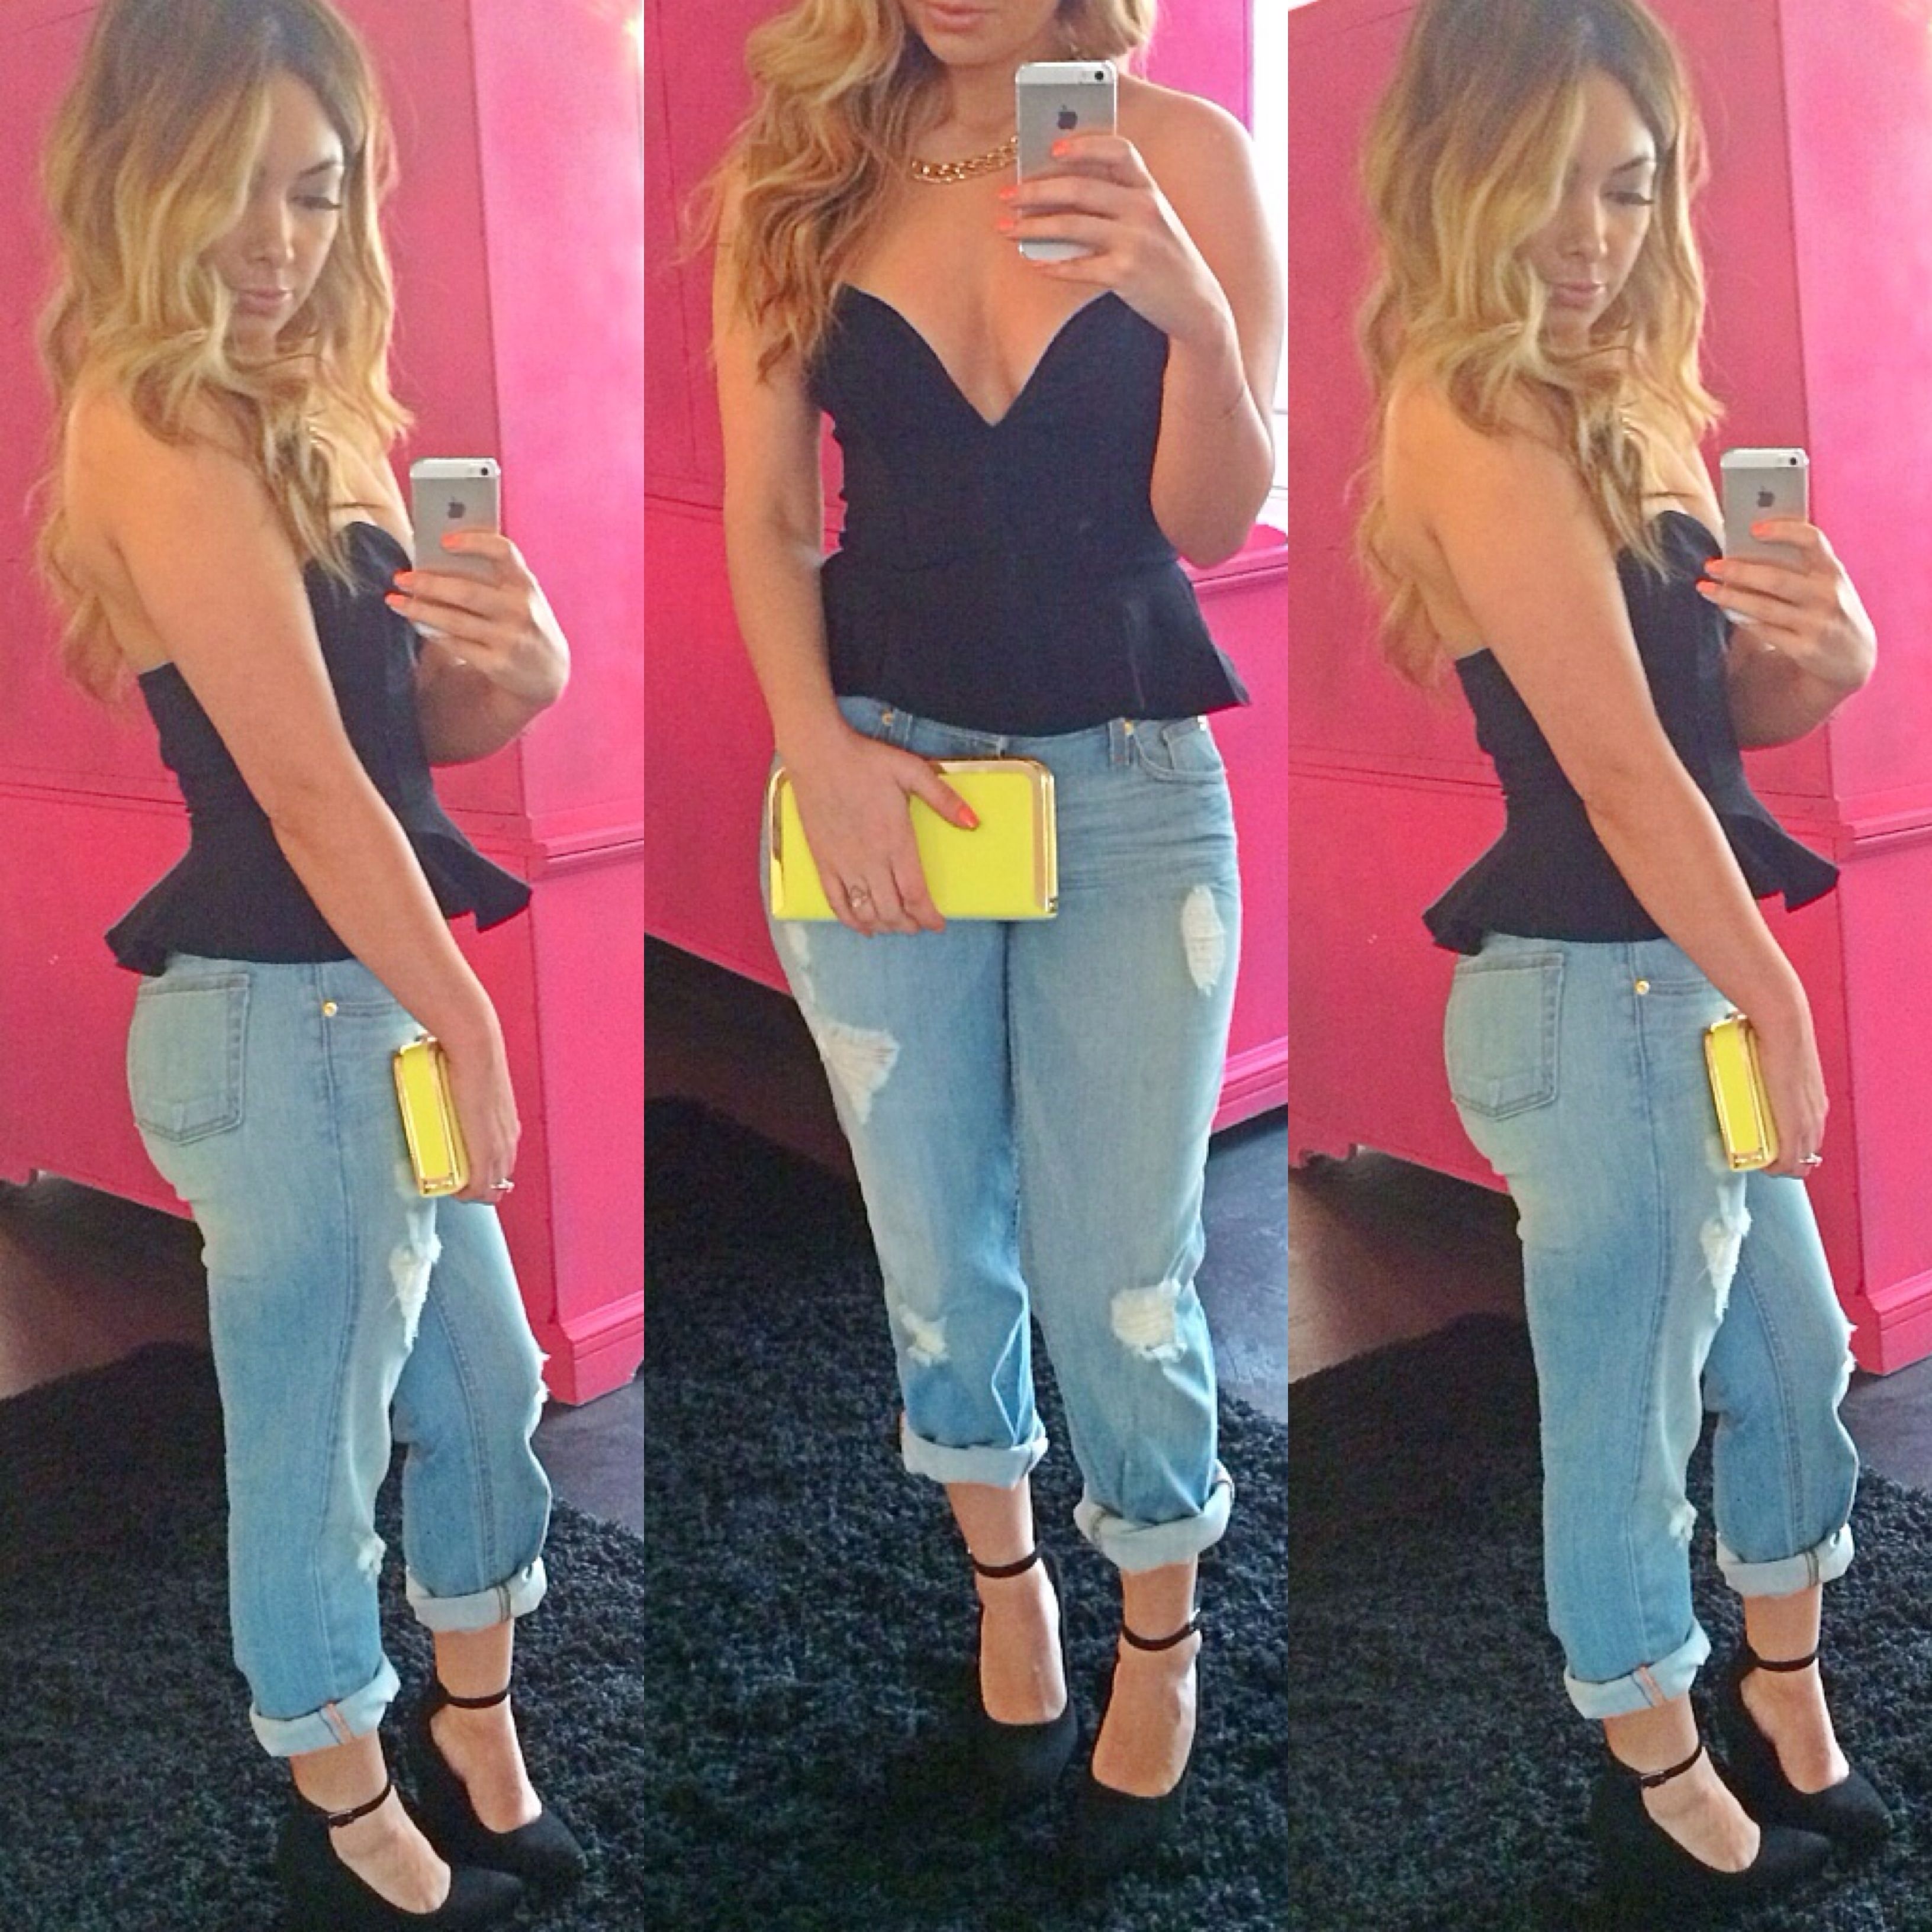 Boyfriend jeans peplum tops cute outfit ootd hot for Outfit ideas for dinner party